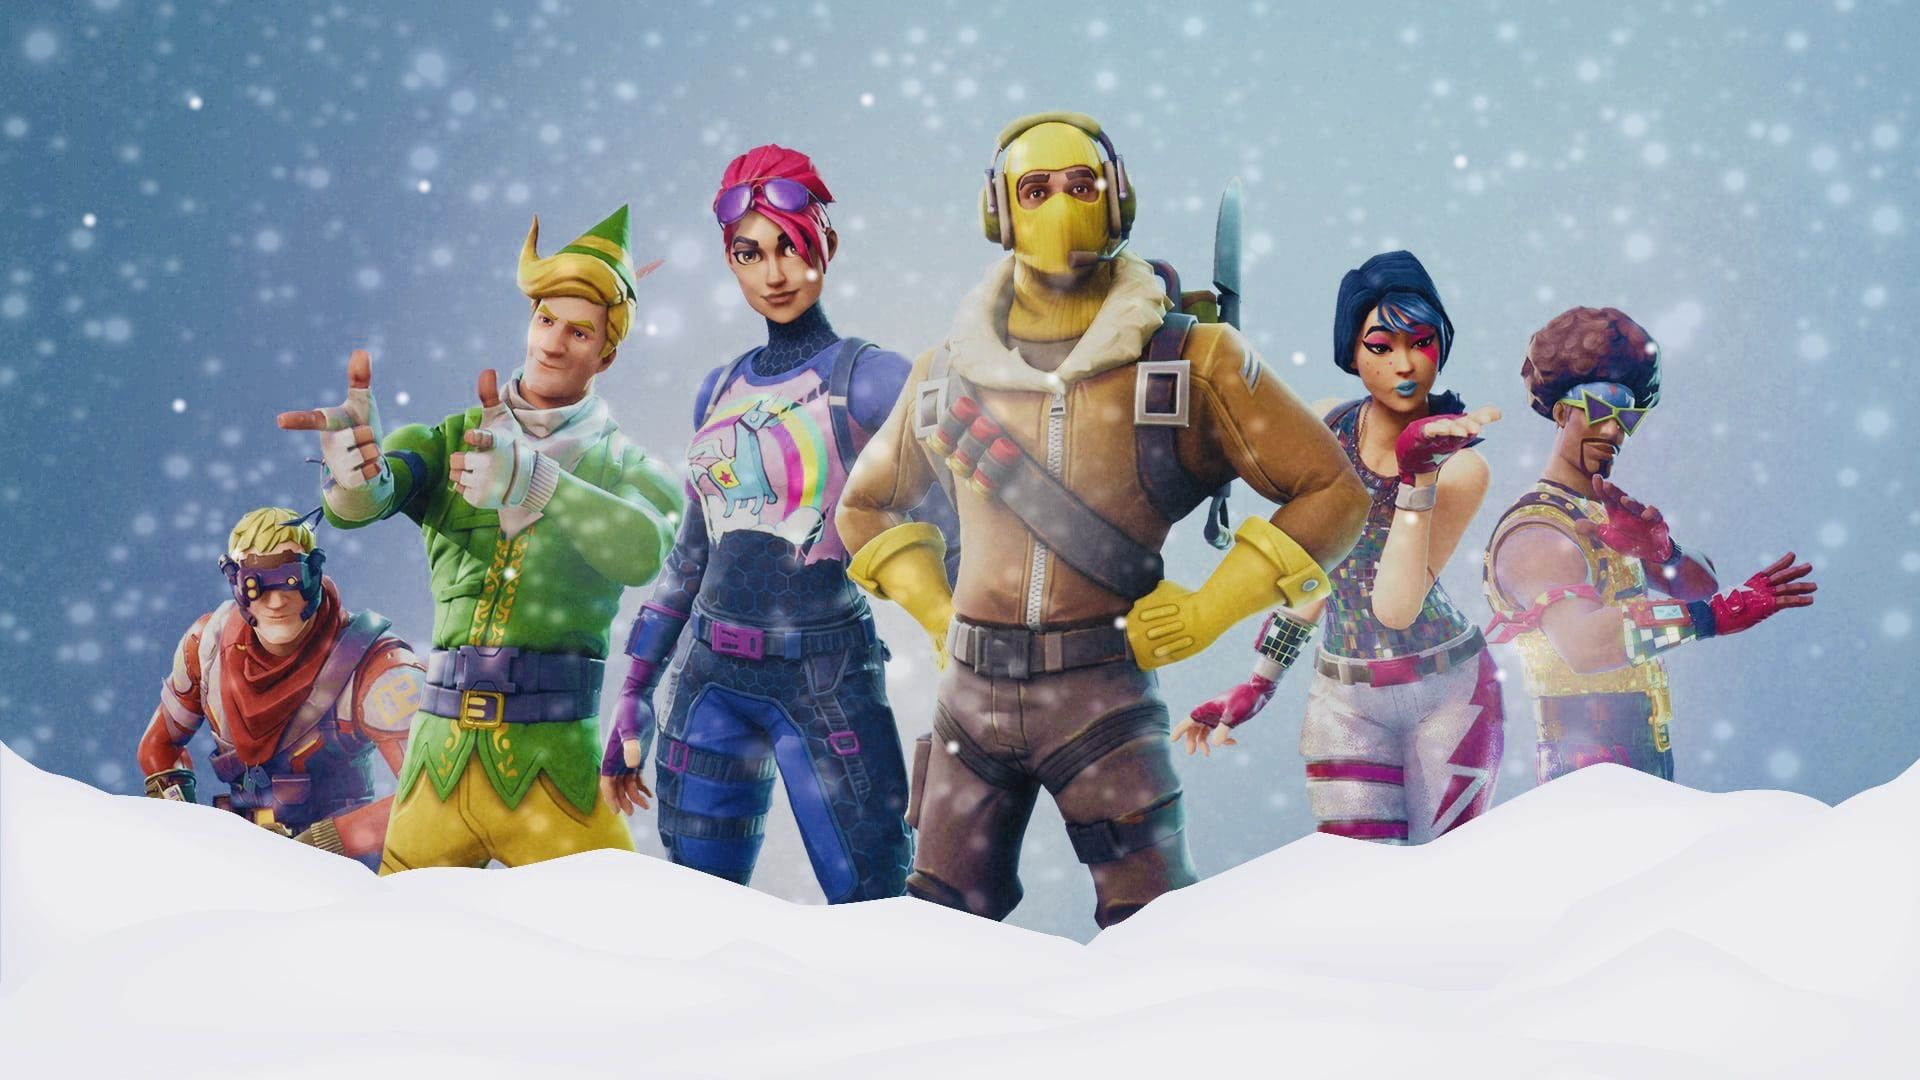 1920x1080 Snow way! Fortnite leak all but confirms winter makeover